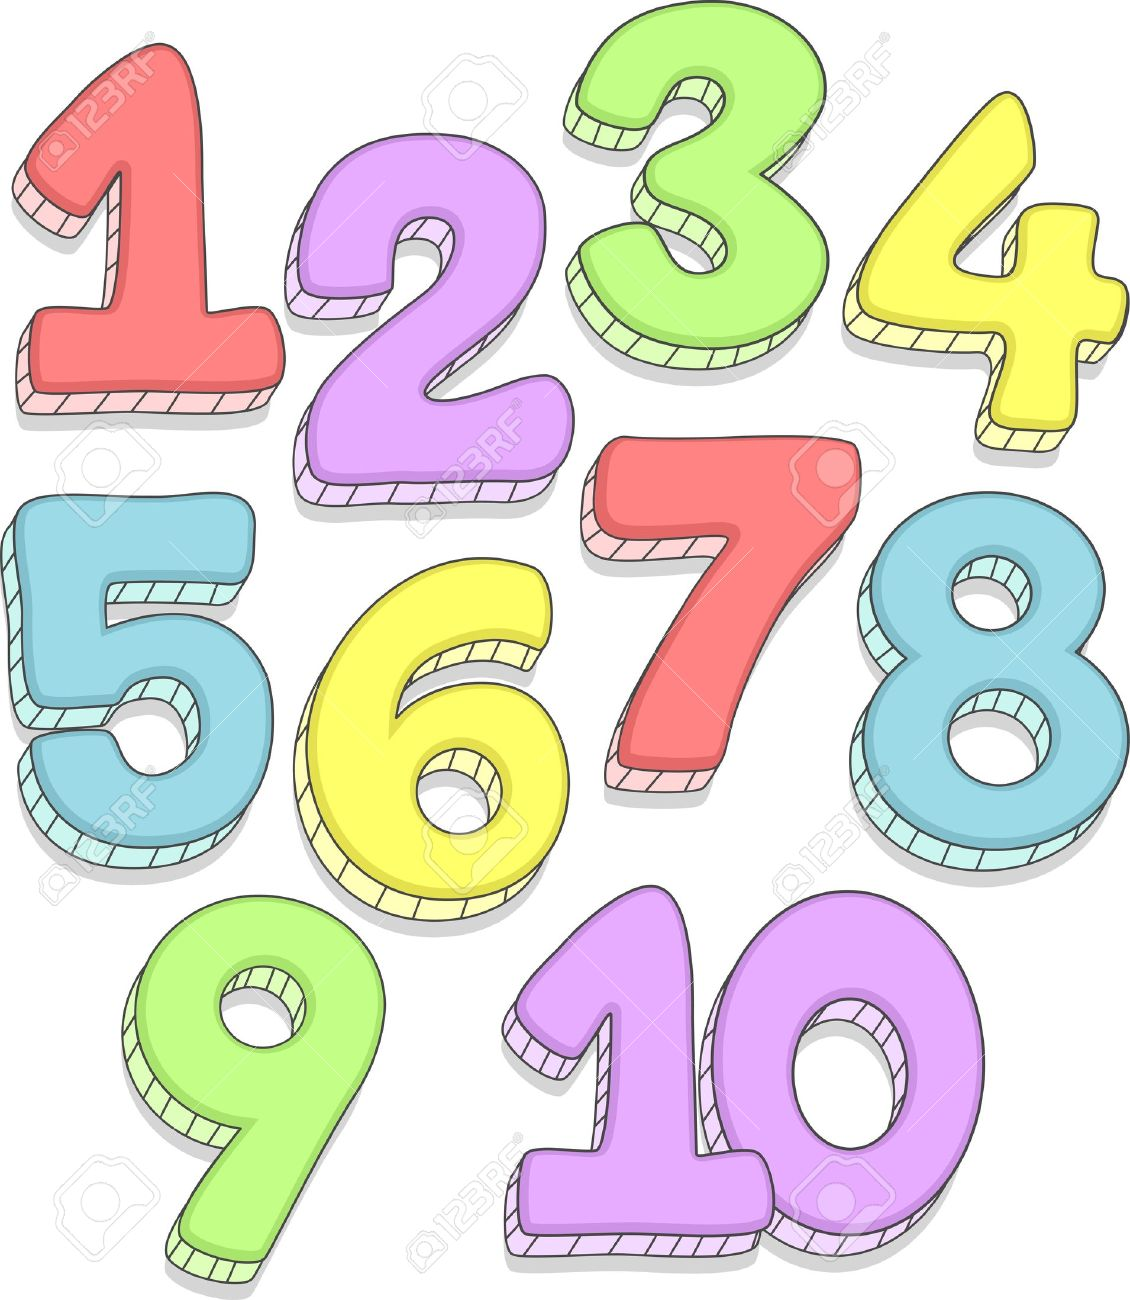 number clipart-number clipart-15